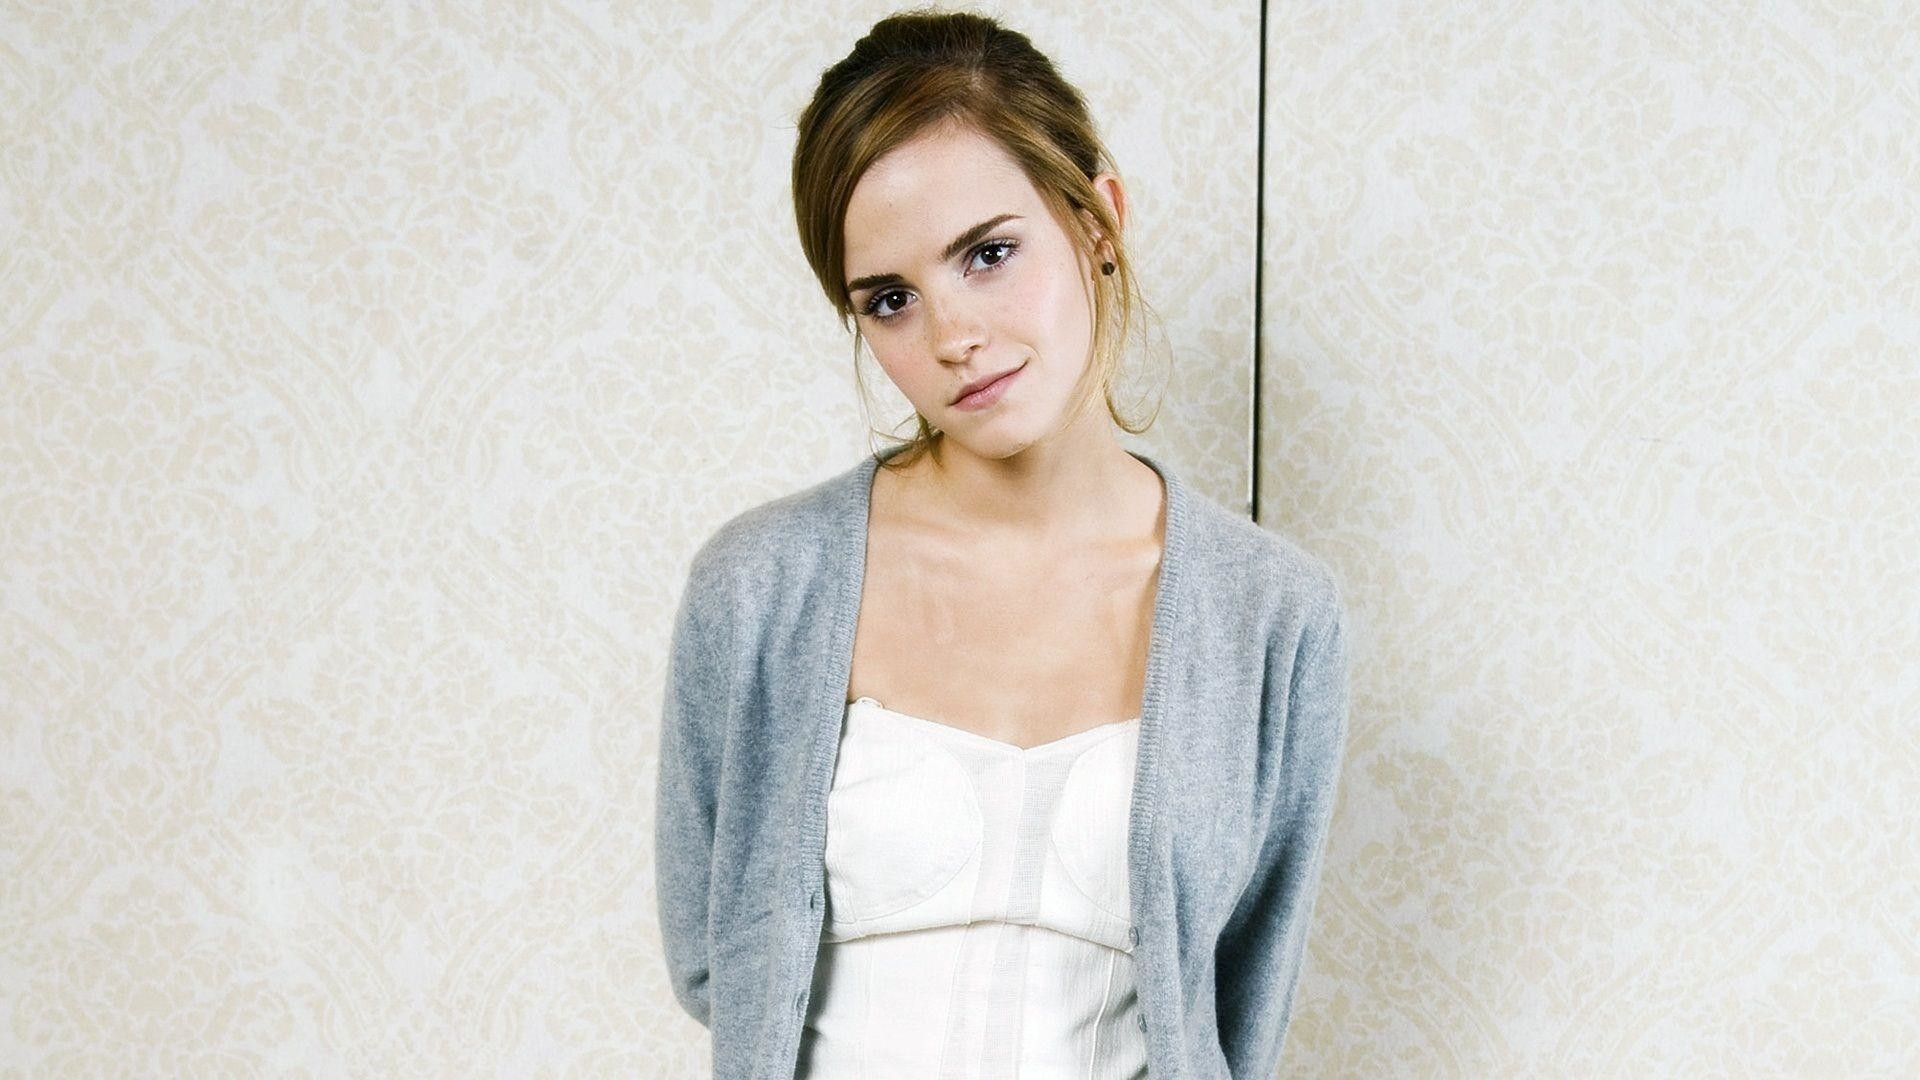 1920x1080 Emma Watson Wallpaper Hd  #1544 Wallpaper .